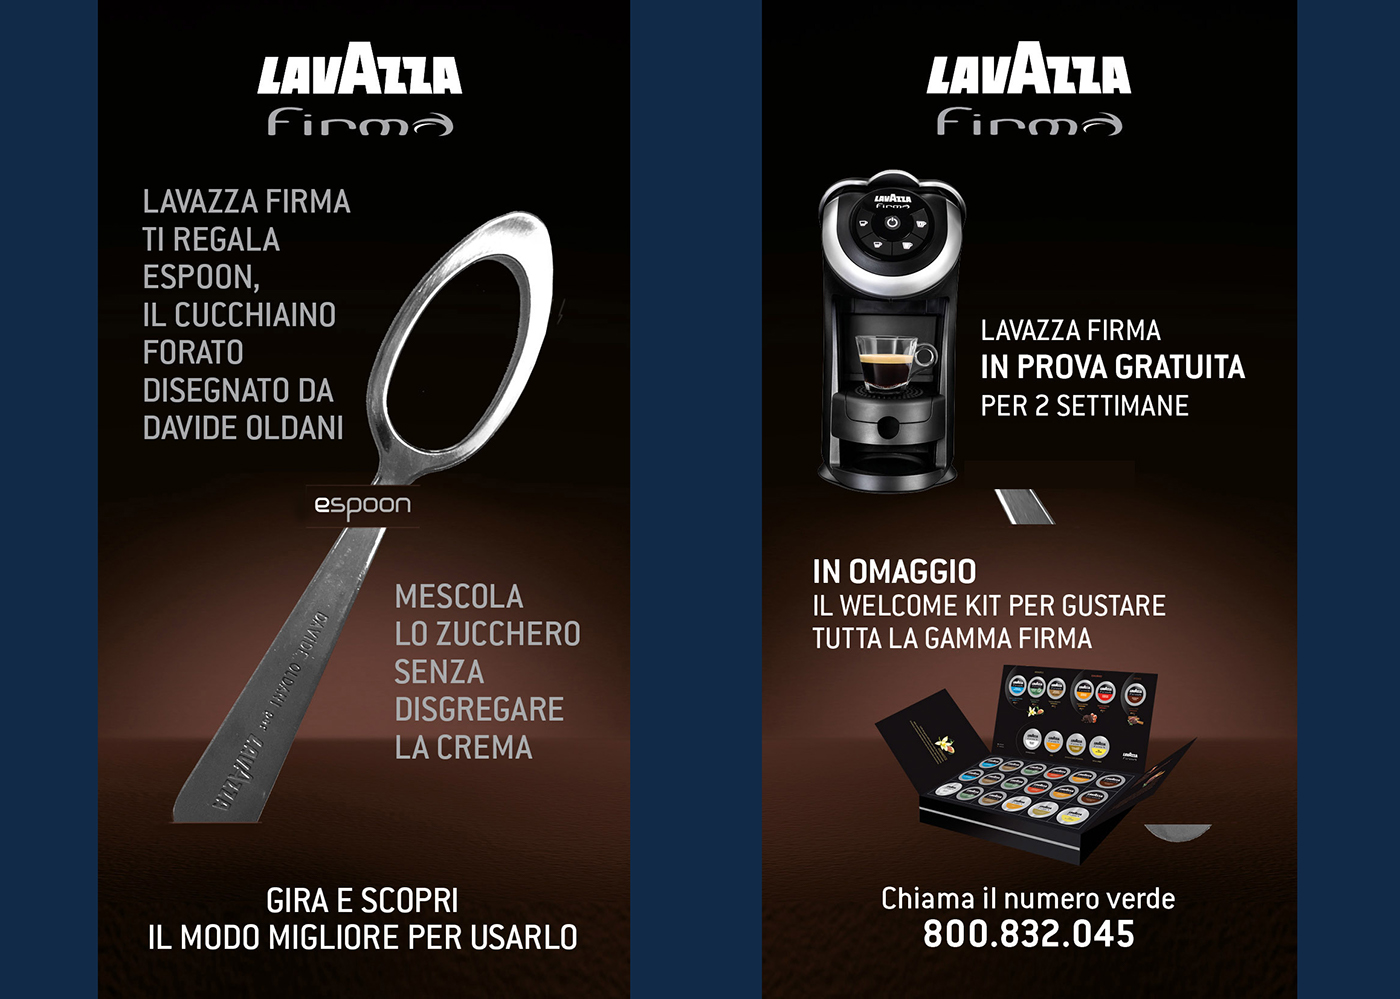 point of sales Promotion event corner Free trial special line Lavazza Lavazza Firma